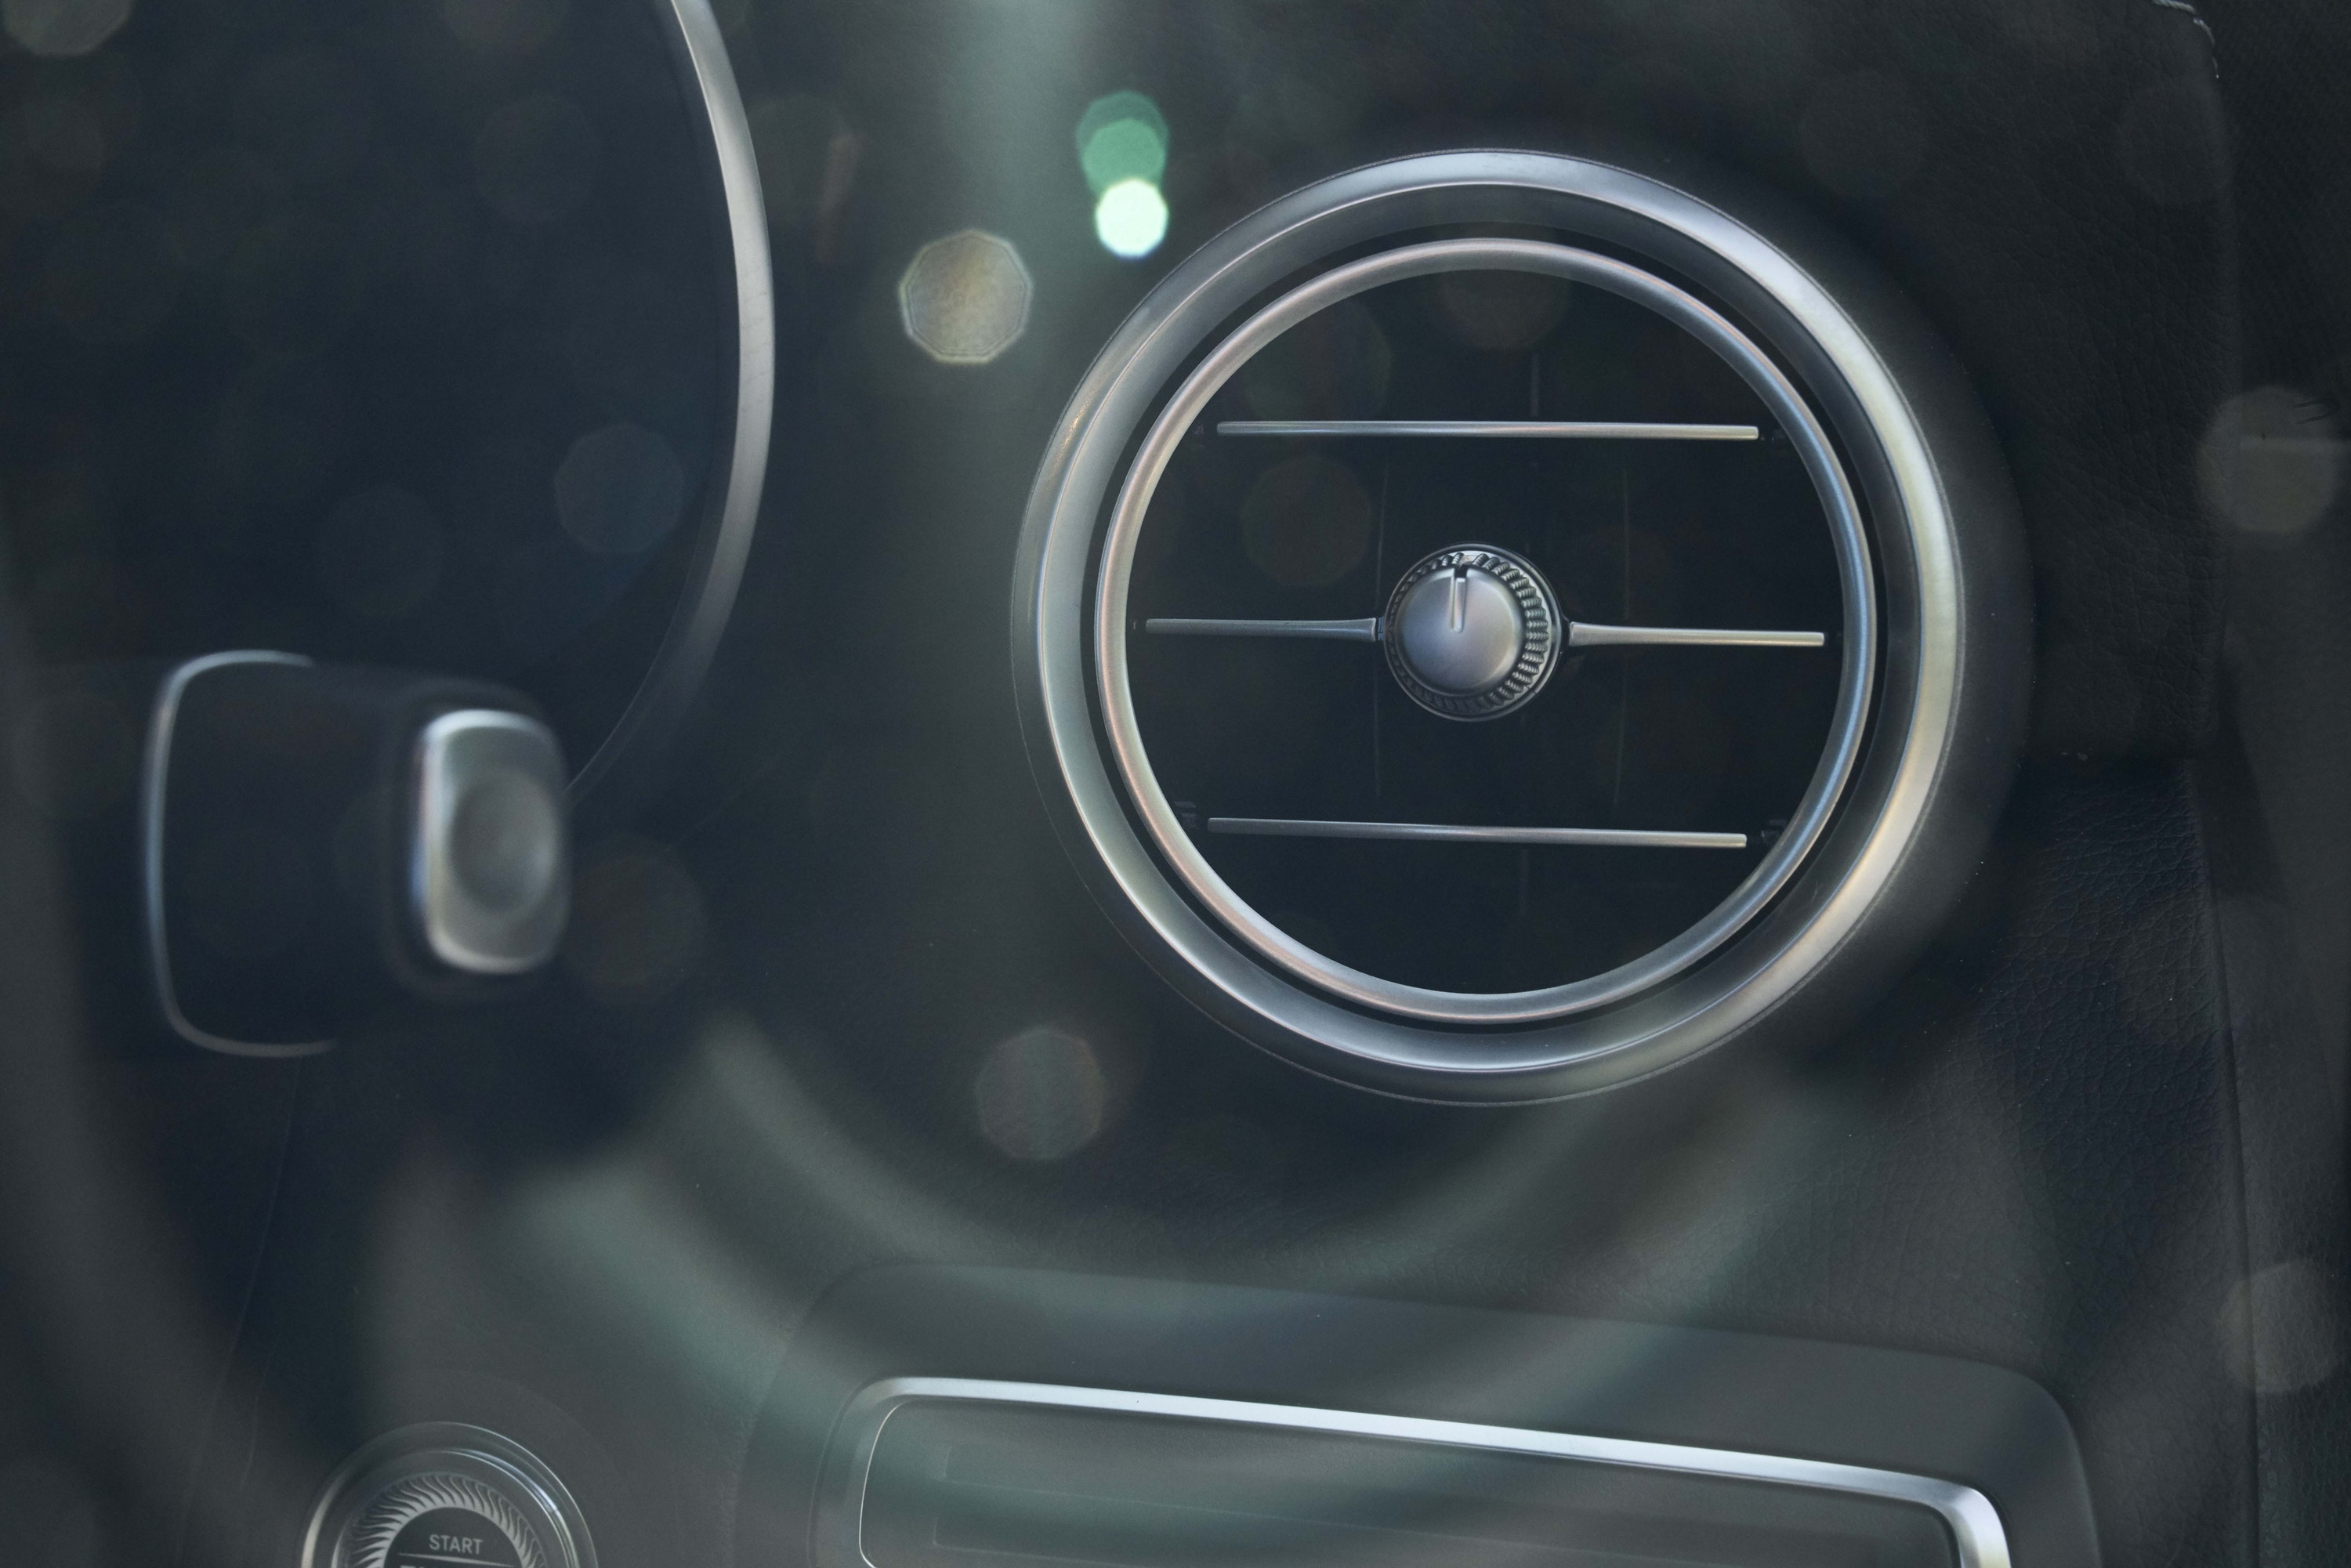 Close up of Air vents inside the Mercedes-Benz C-Class